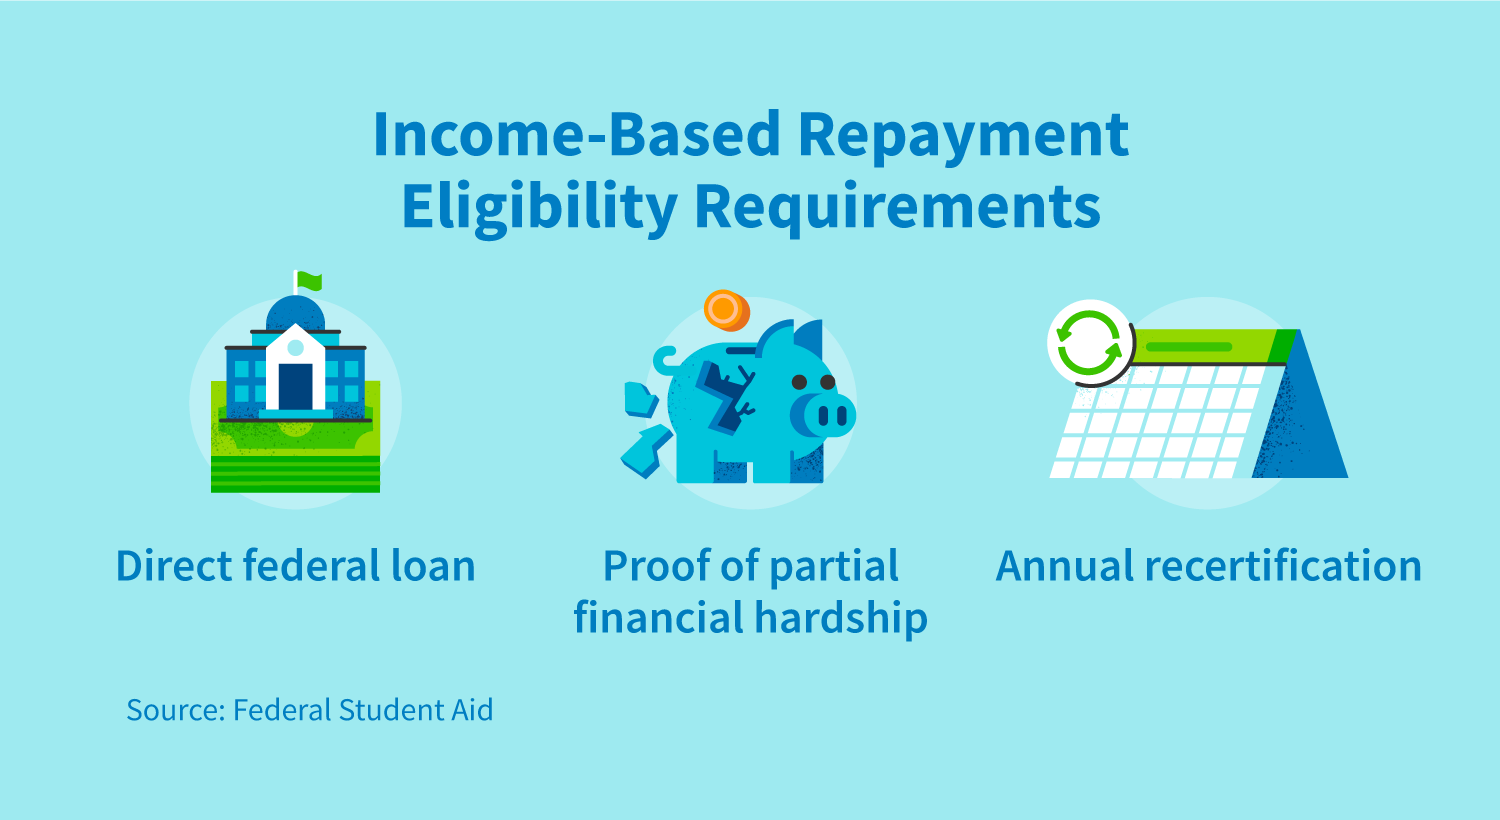 Income-based repayment eligibility requirements: direct federal loan, proof of partial financial hardship, annual recertification.